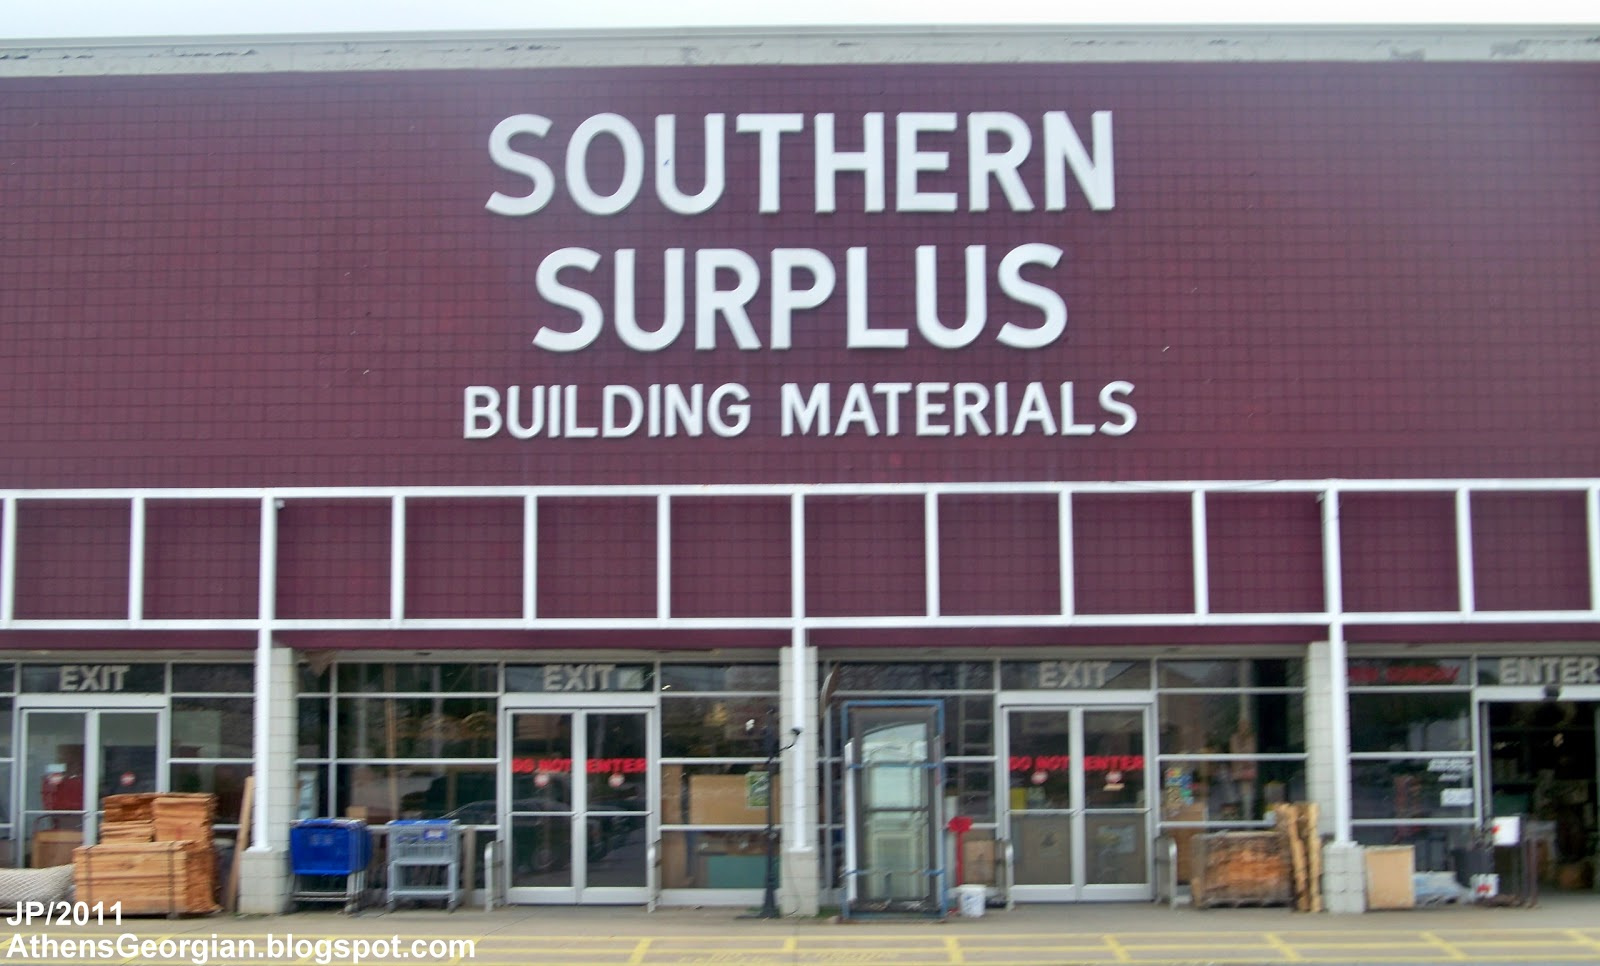 Southern surplus athens georgia southern surplus building material construction supply store bogart ga